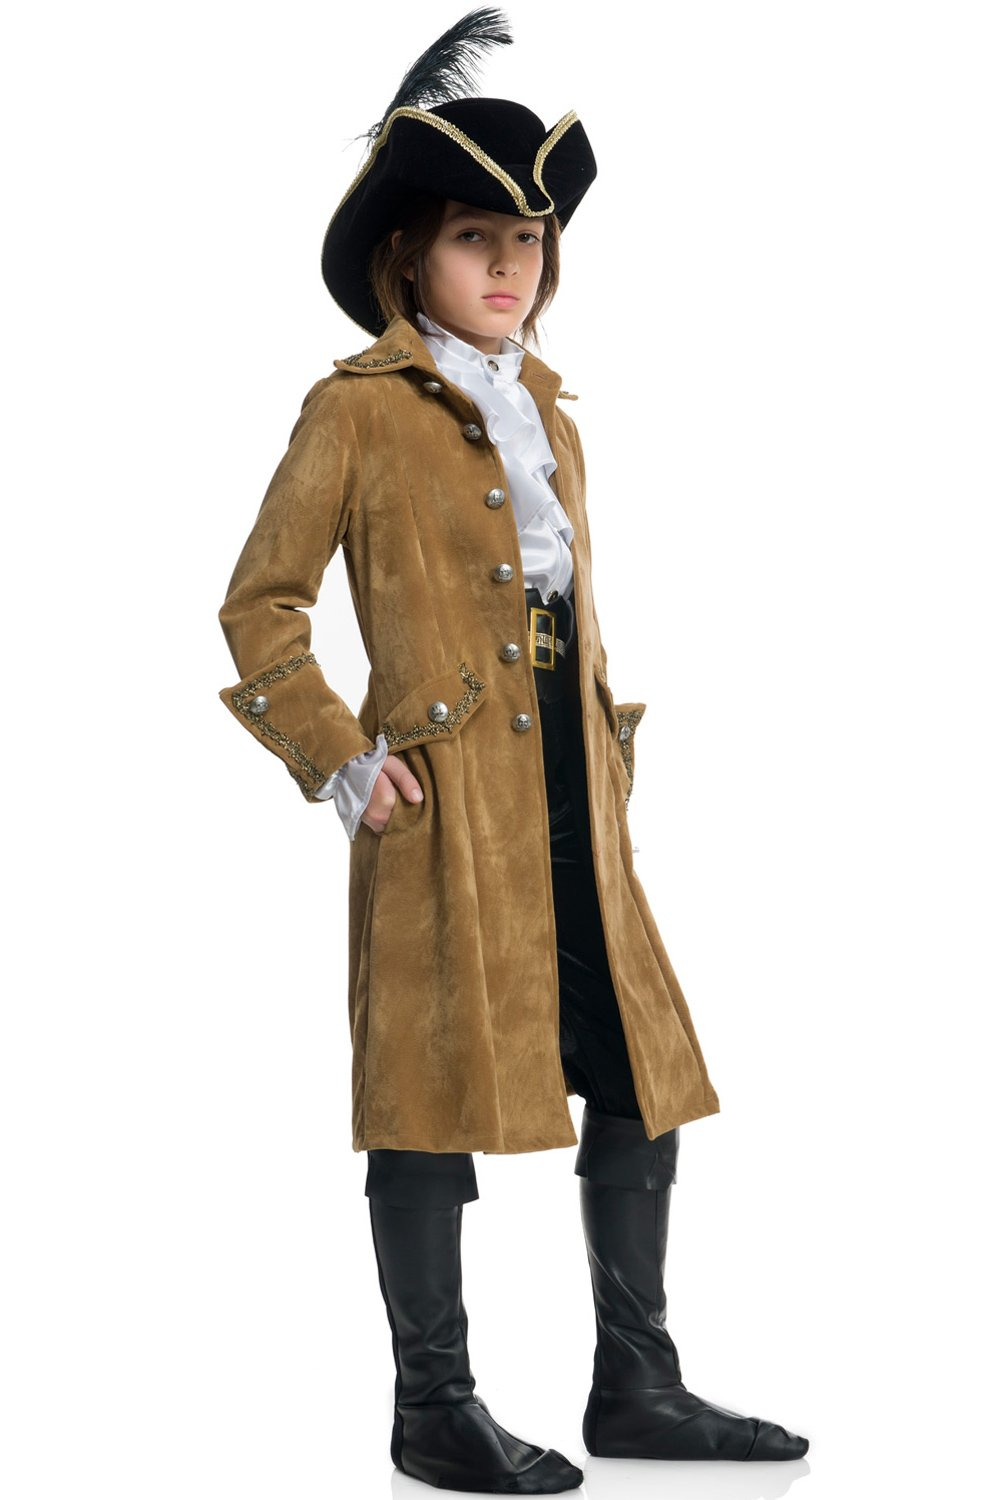 Charades Buccaneer Pirate Child Costume-X-Large